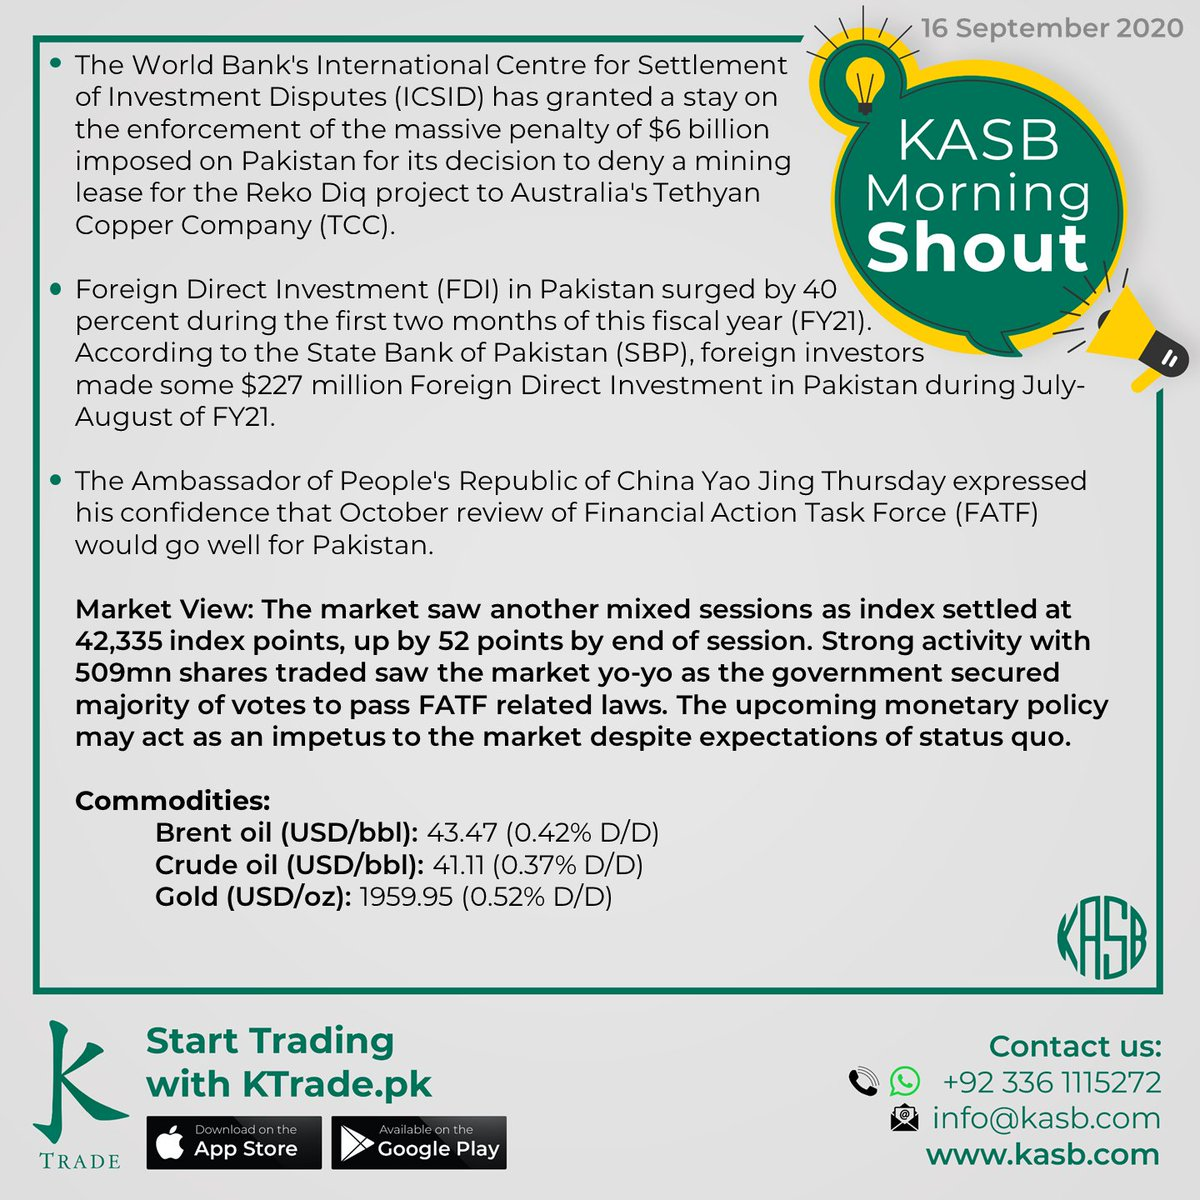 KASB Morning Shout: Our views on today's news #kasb #smartinvesting #psx #stockmarket #KTrade #onlinetrading #pakistaneconomy #imrankhan #sbp #inflation #kse100 #brokeragehouse #psxstocks #marketupdate #emergingmarkets #frontiermarkets #news #morning #today #views https://t.co/TfUoMUIBsR